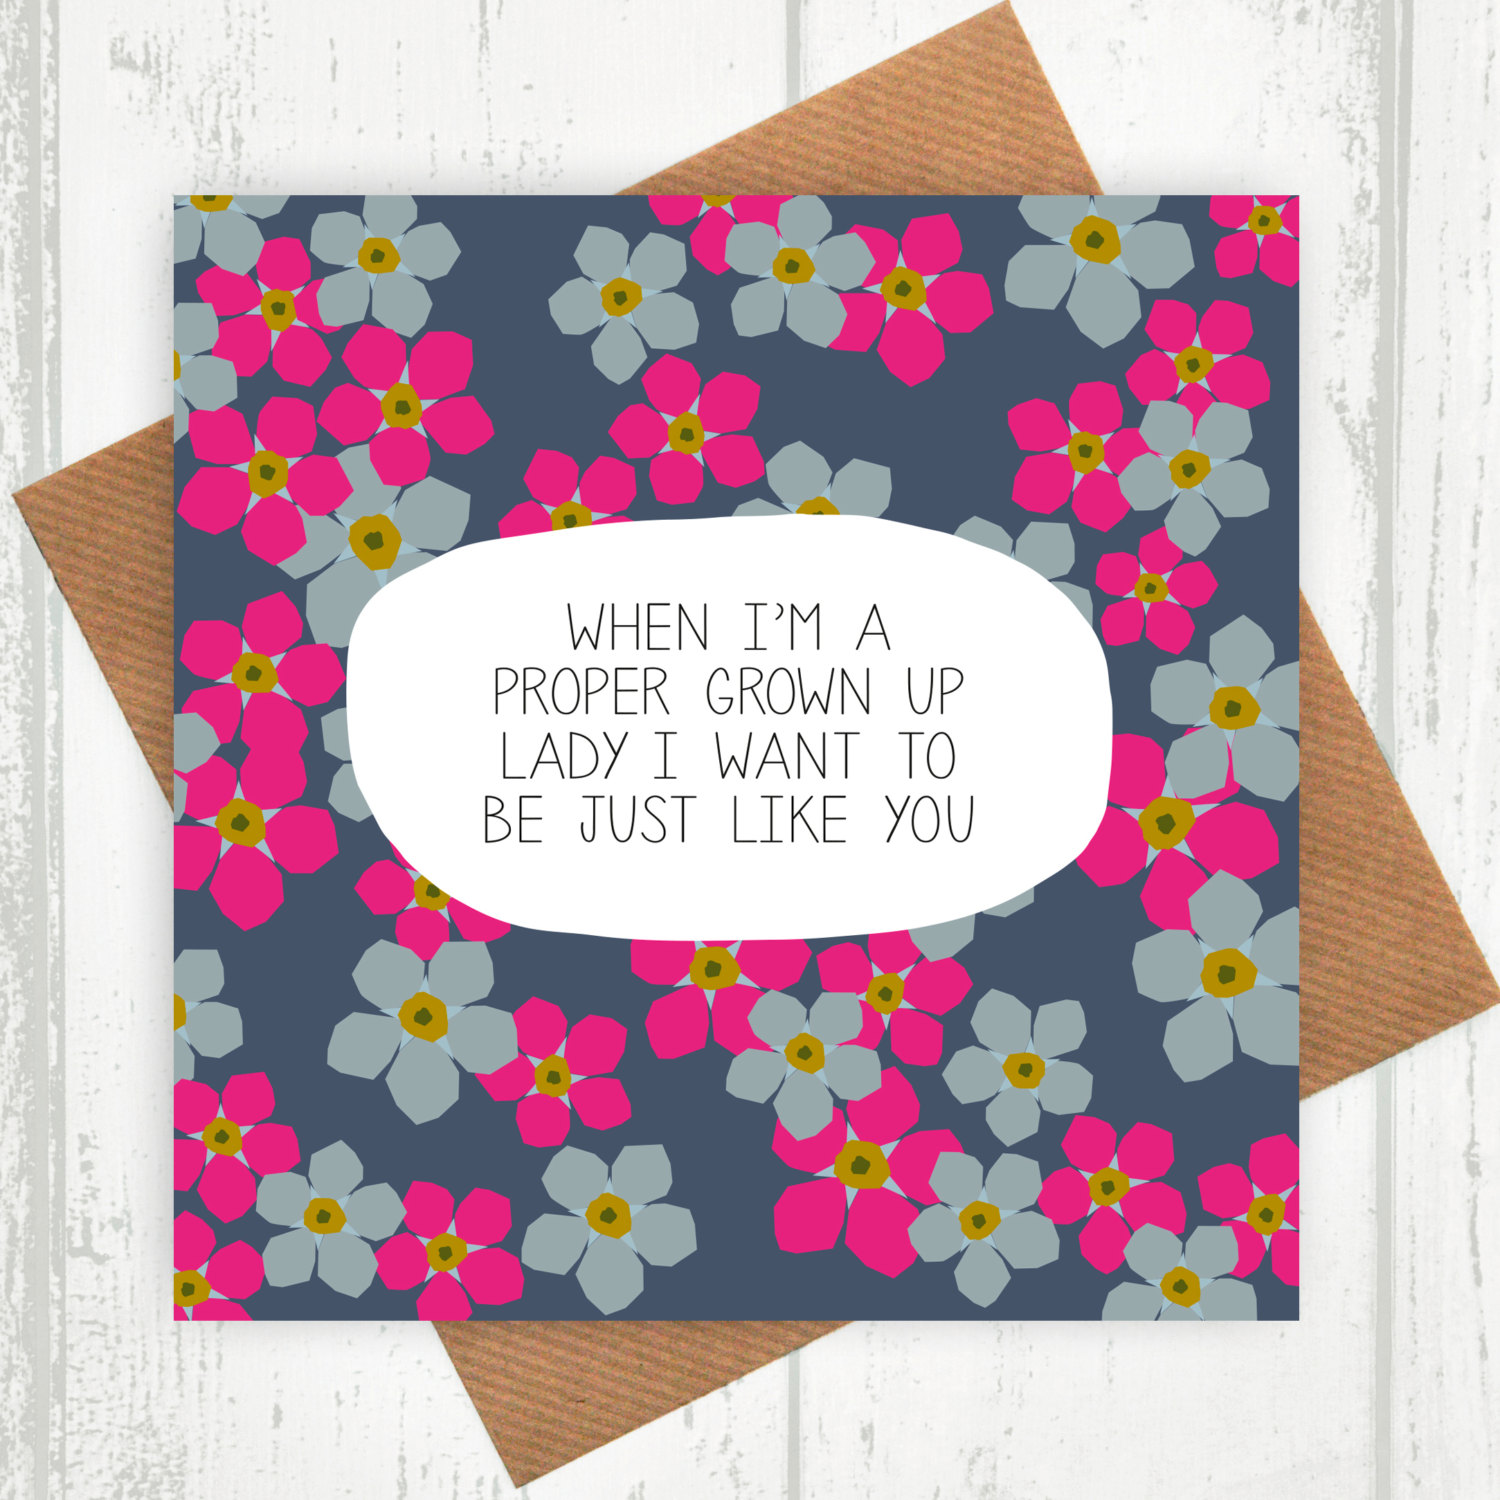 homemade birthday card ideas for aunt ; groovy-sister-birthday-gift-as-wells-as-personalized-diy-birthday-card-also-ma-design-ideas-birthday-card-ideas_cool-birthday-cards